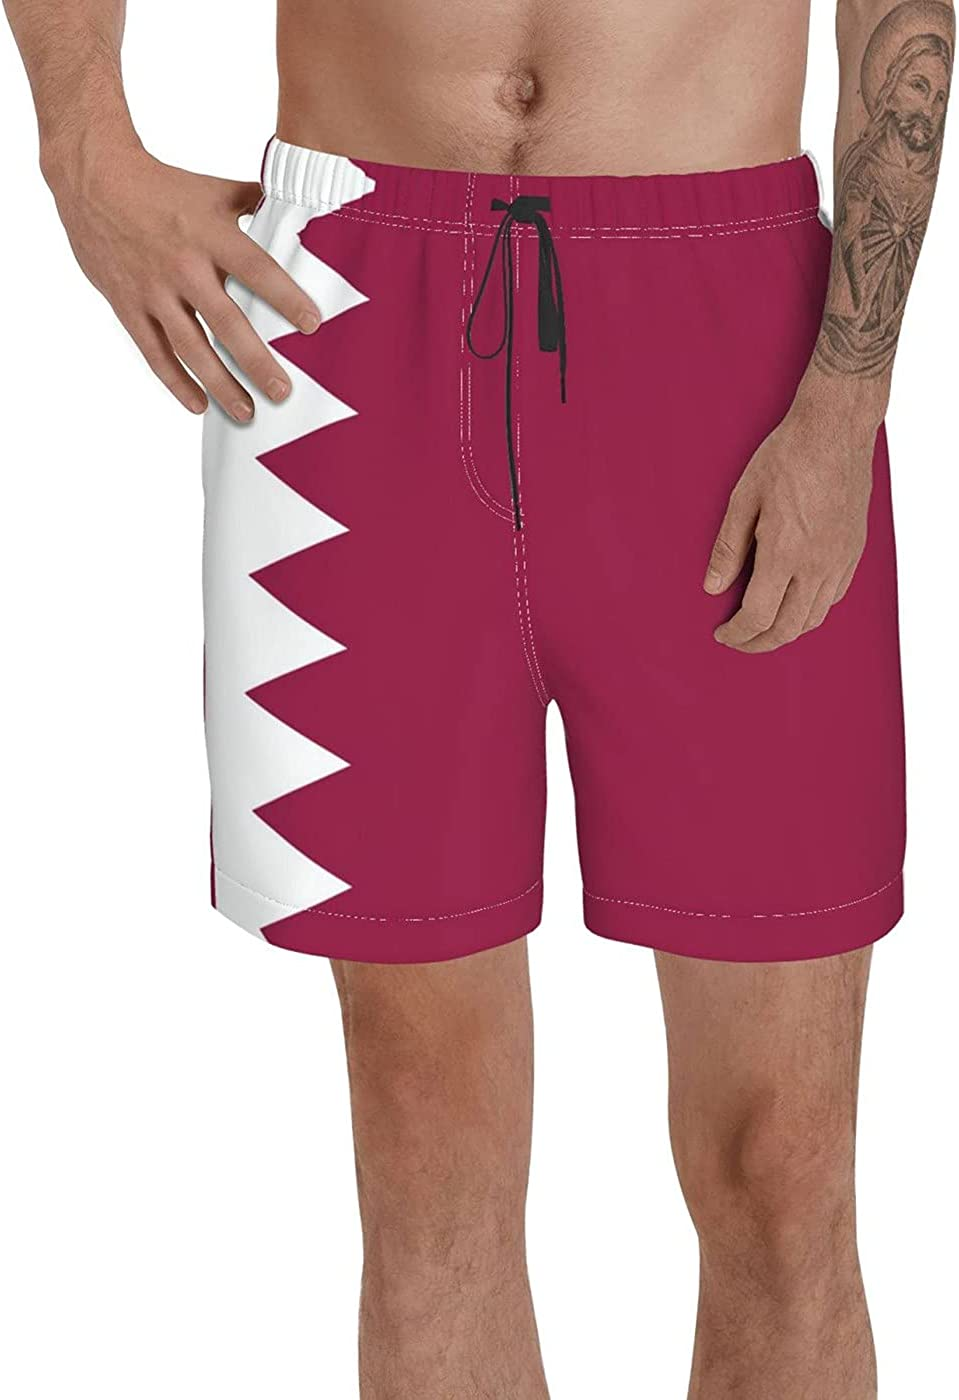 Count Qatar Flag Men's 3D Printed Funny Summer Quick Dry Swim Short Board Shorts with